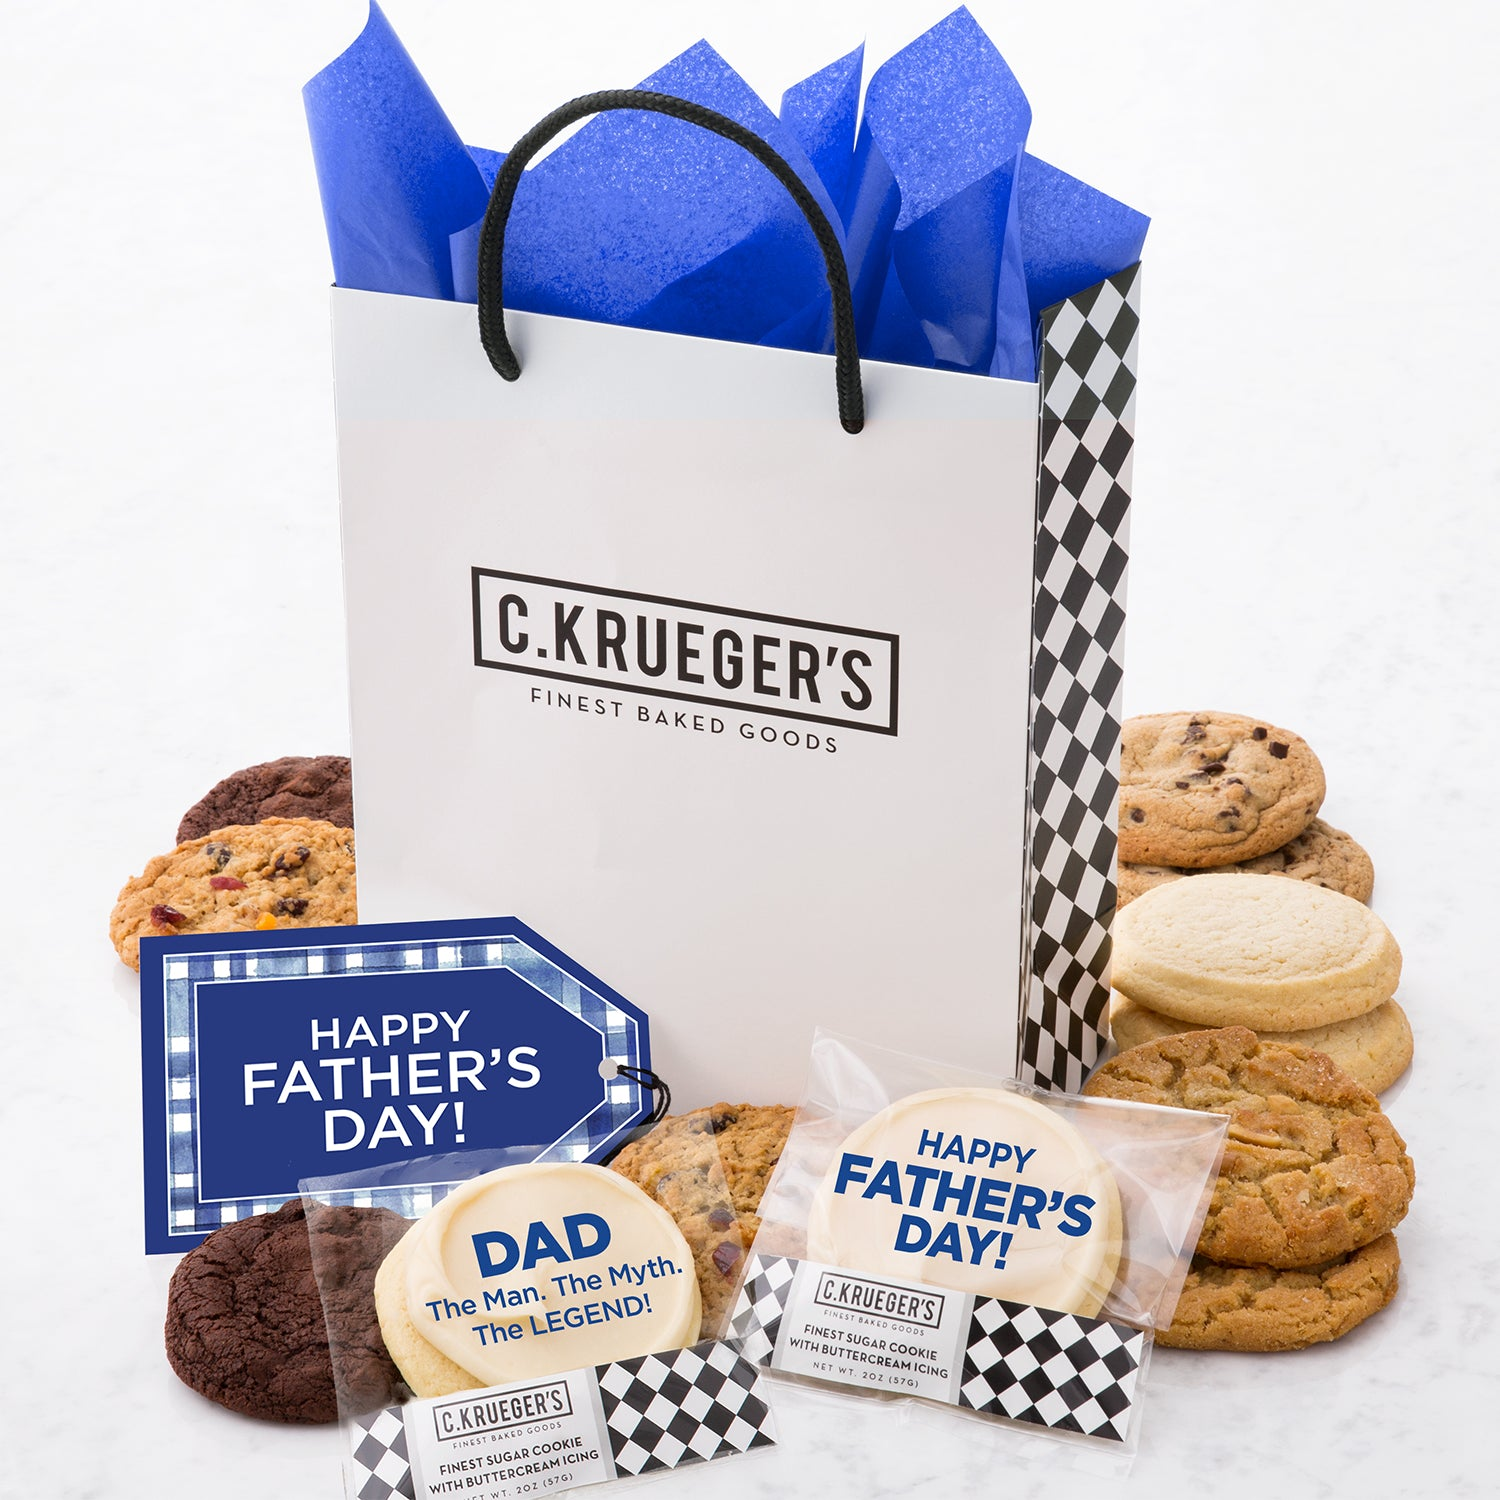 Happy Father's Day Gift Bag - All Kinds